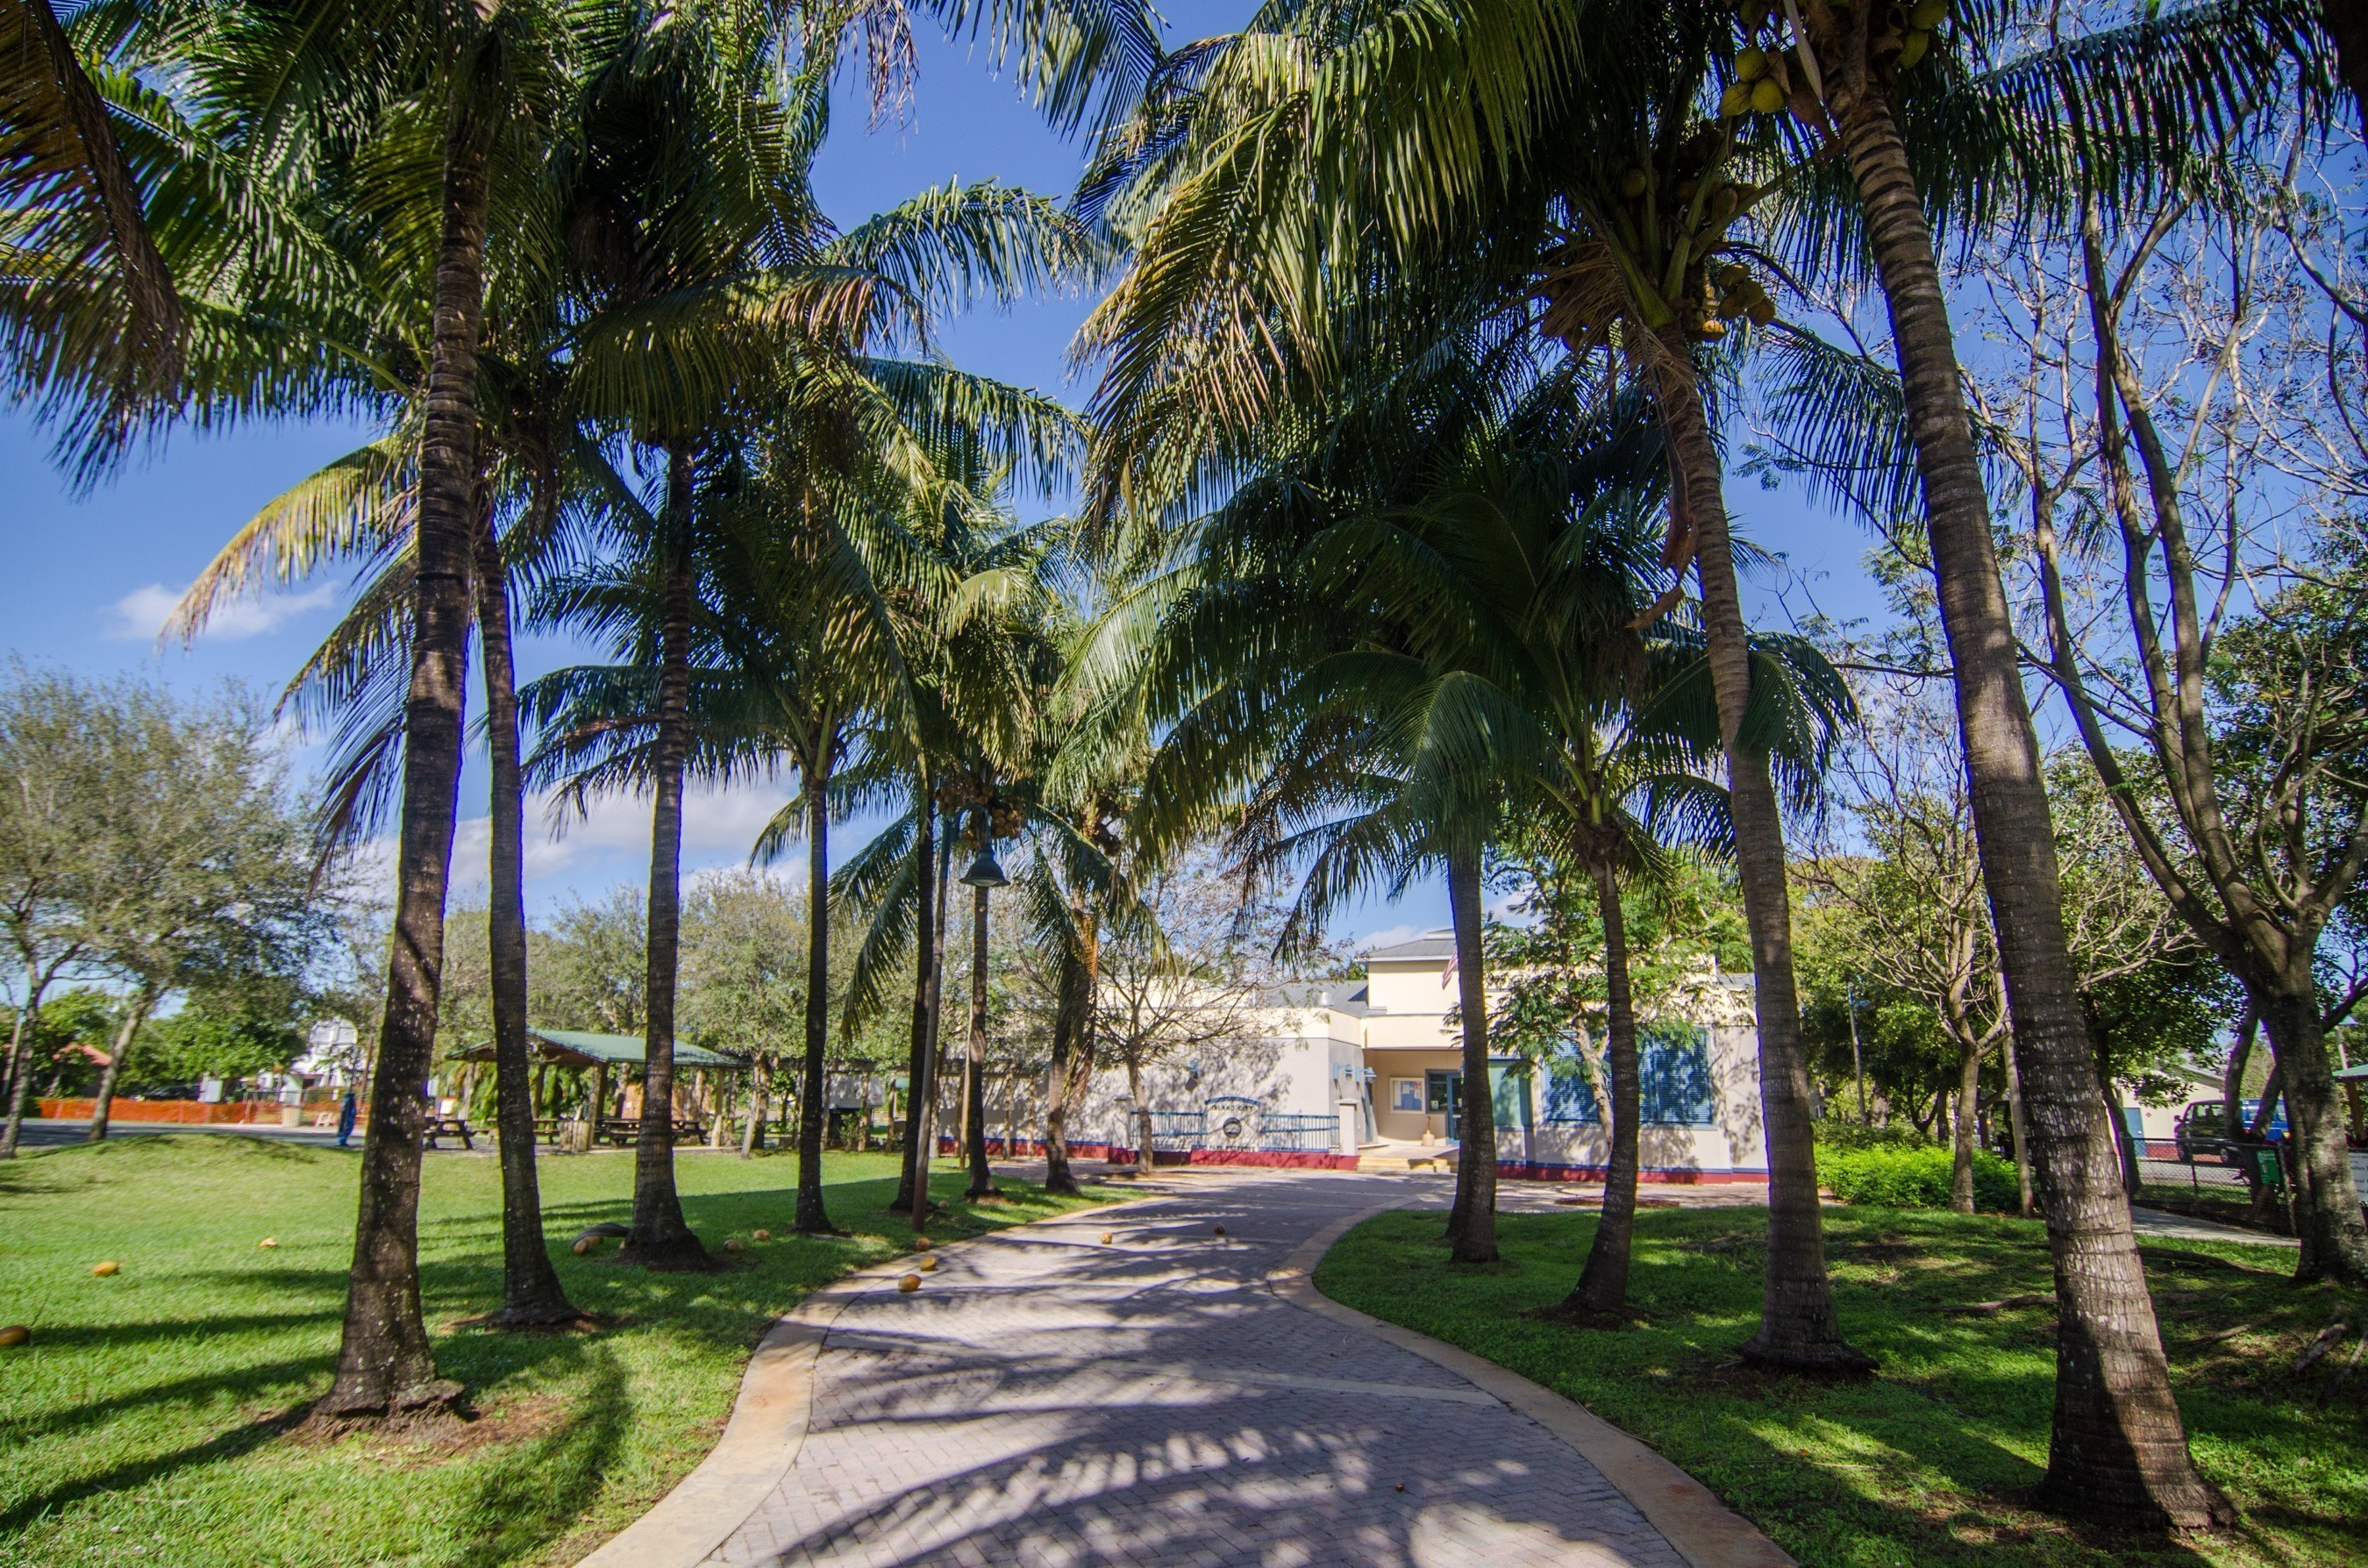 Wilton Manors Island City Park Preserve will be Closed to the Public August 3 - 21 as it Plays Host